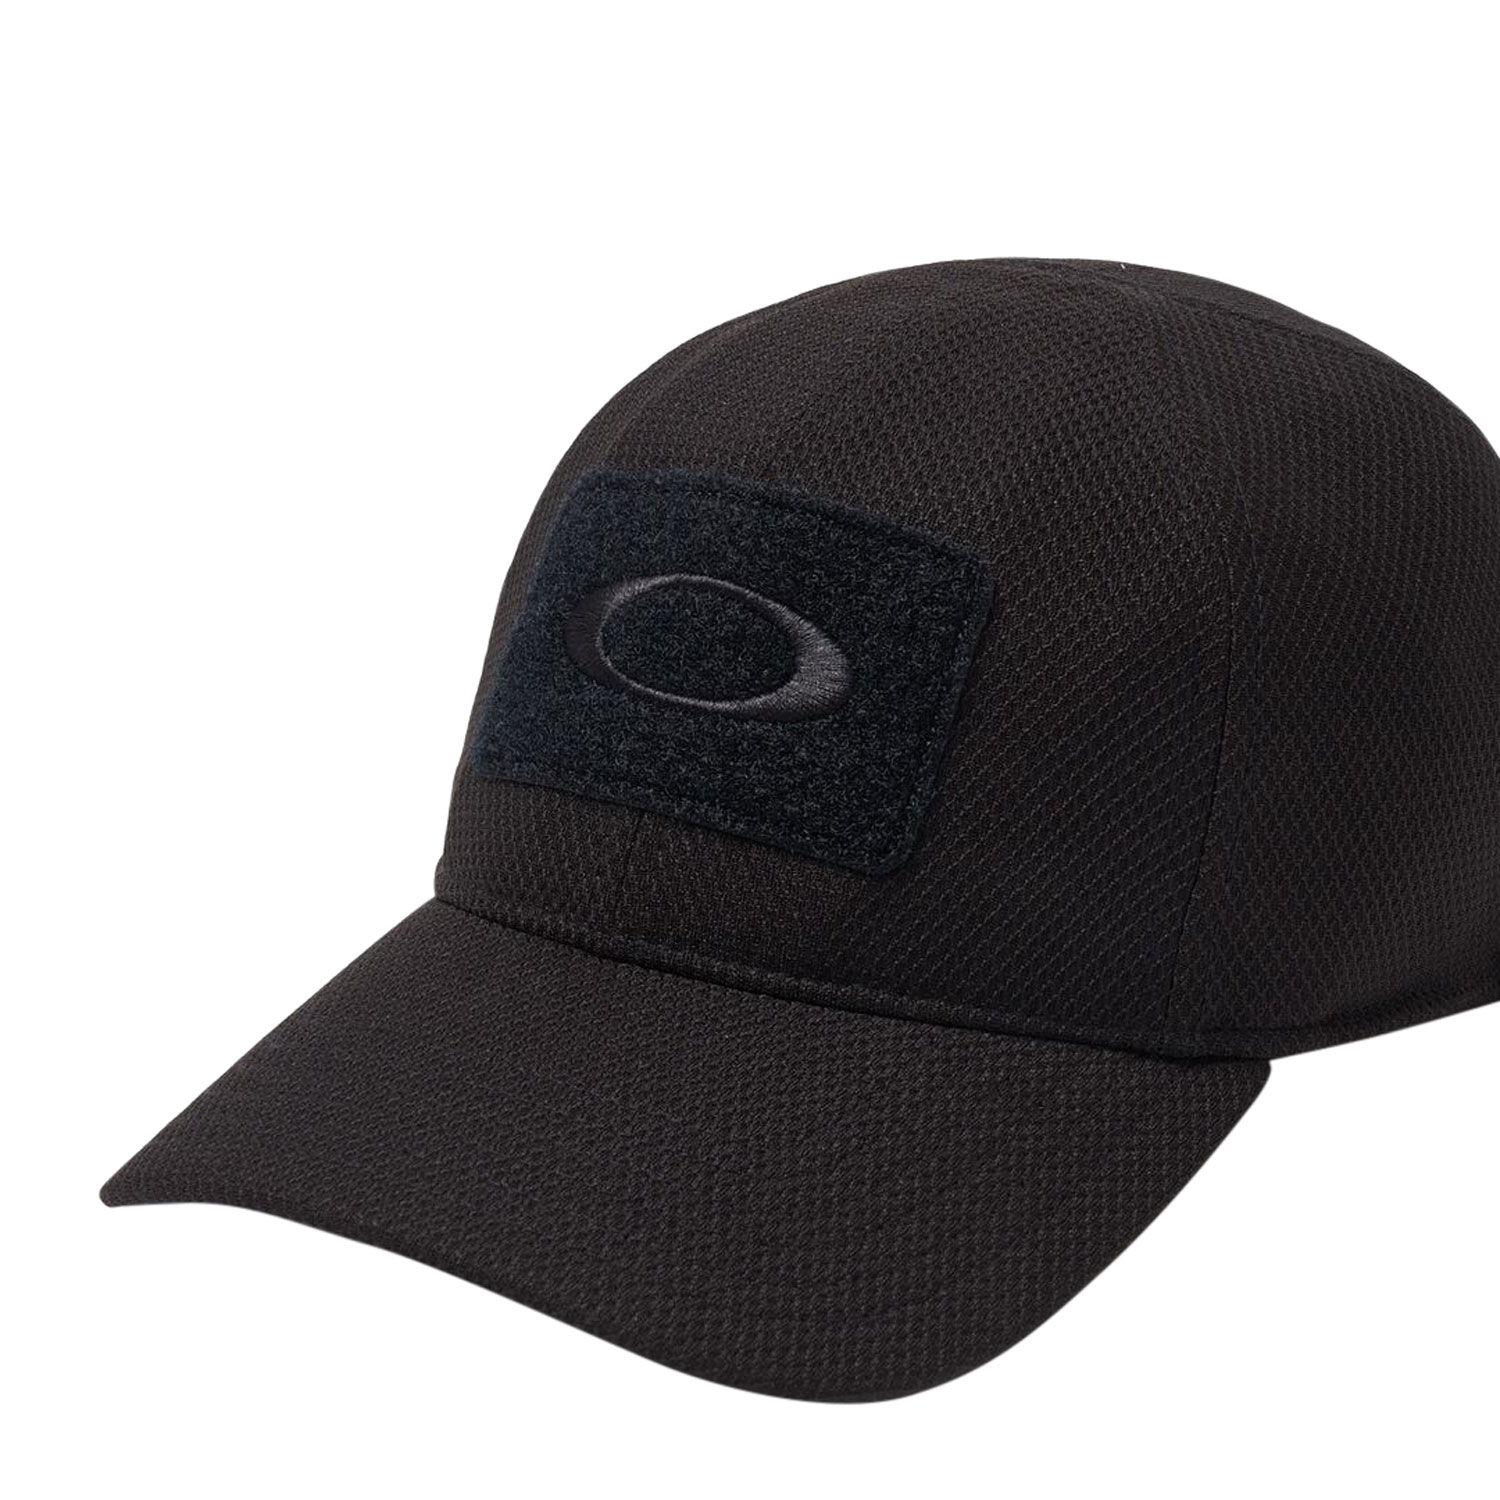 OAKLEY (LUXOTTICA) 911444A-001 SI Cotton Cap  Polyester Large/X-Large Black